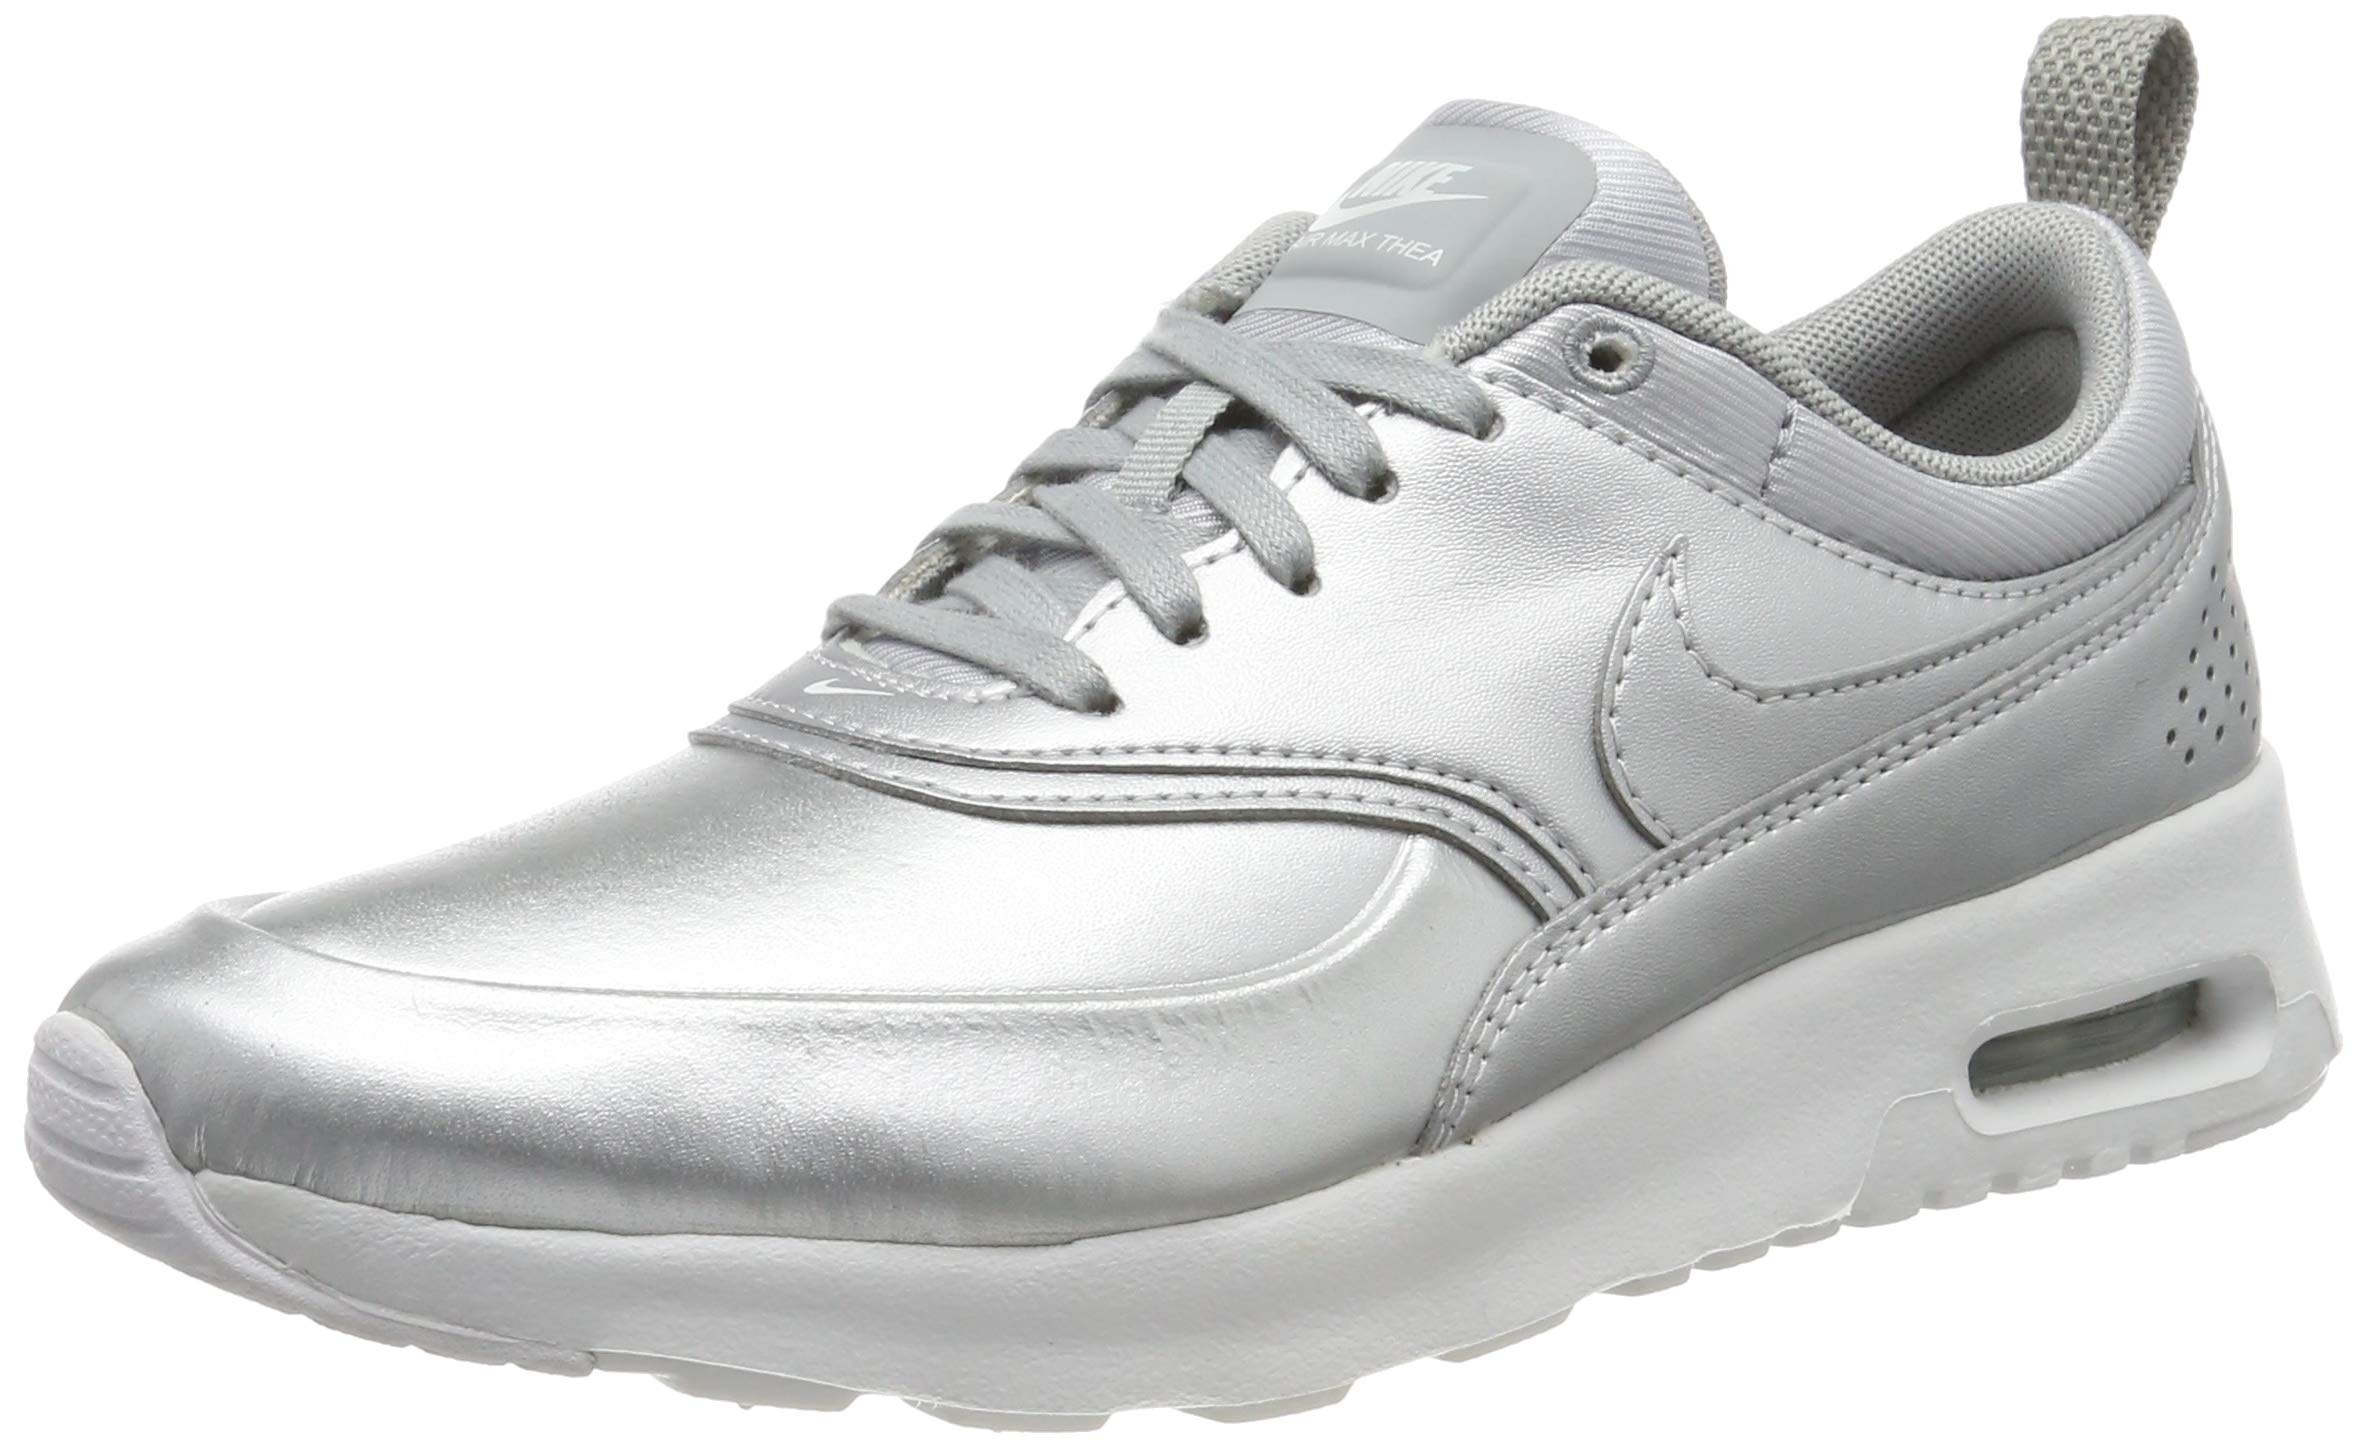 567c0310b6 Galleon - Nike Womens Air Max Thea Se Low Top Lace Up Running Sneaker,  Silver, Size 9.5 O9